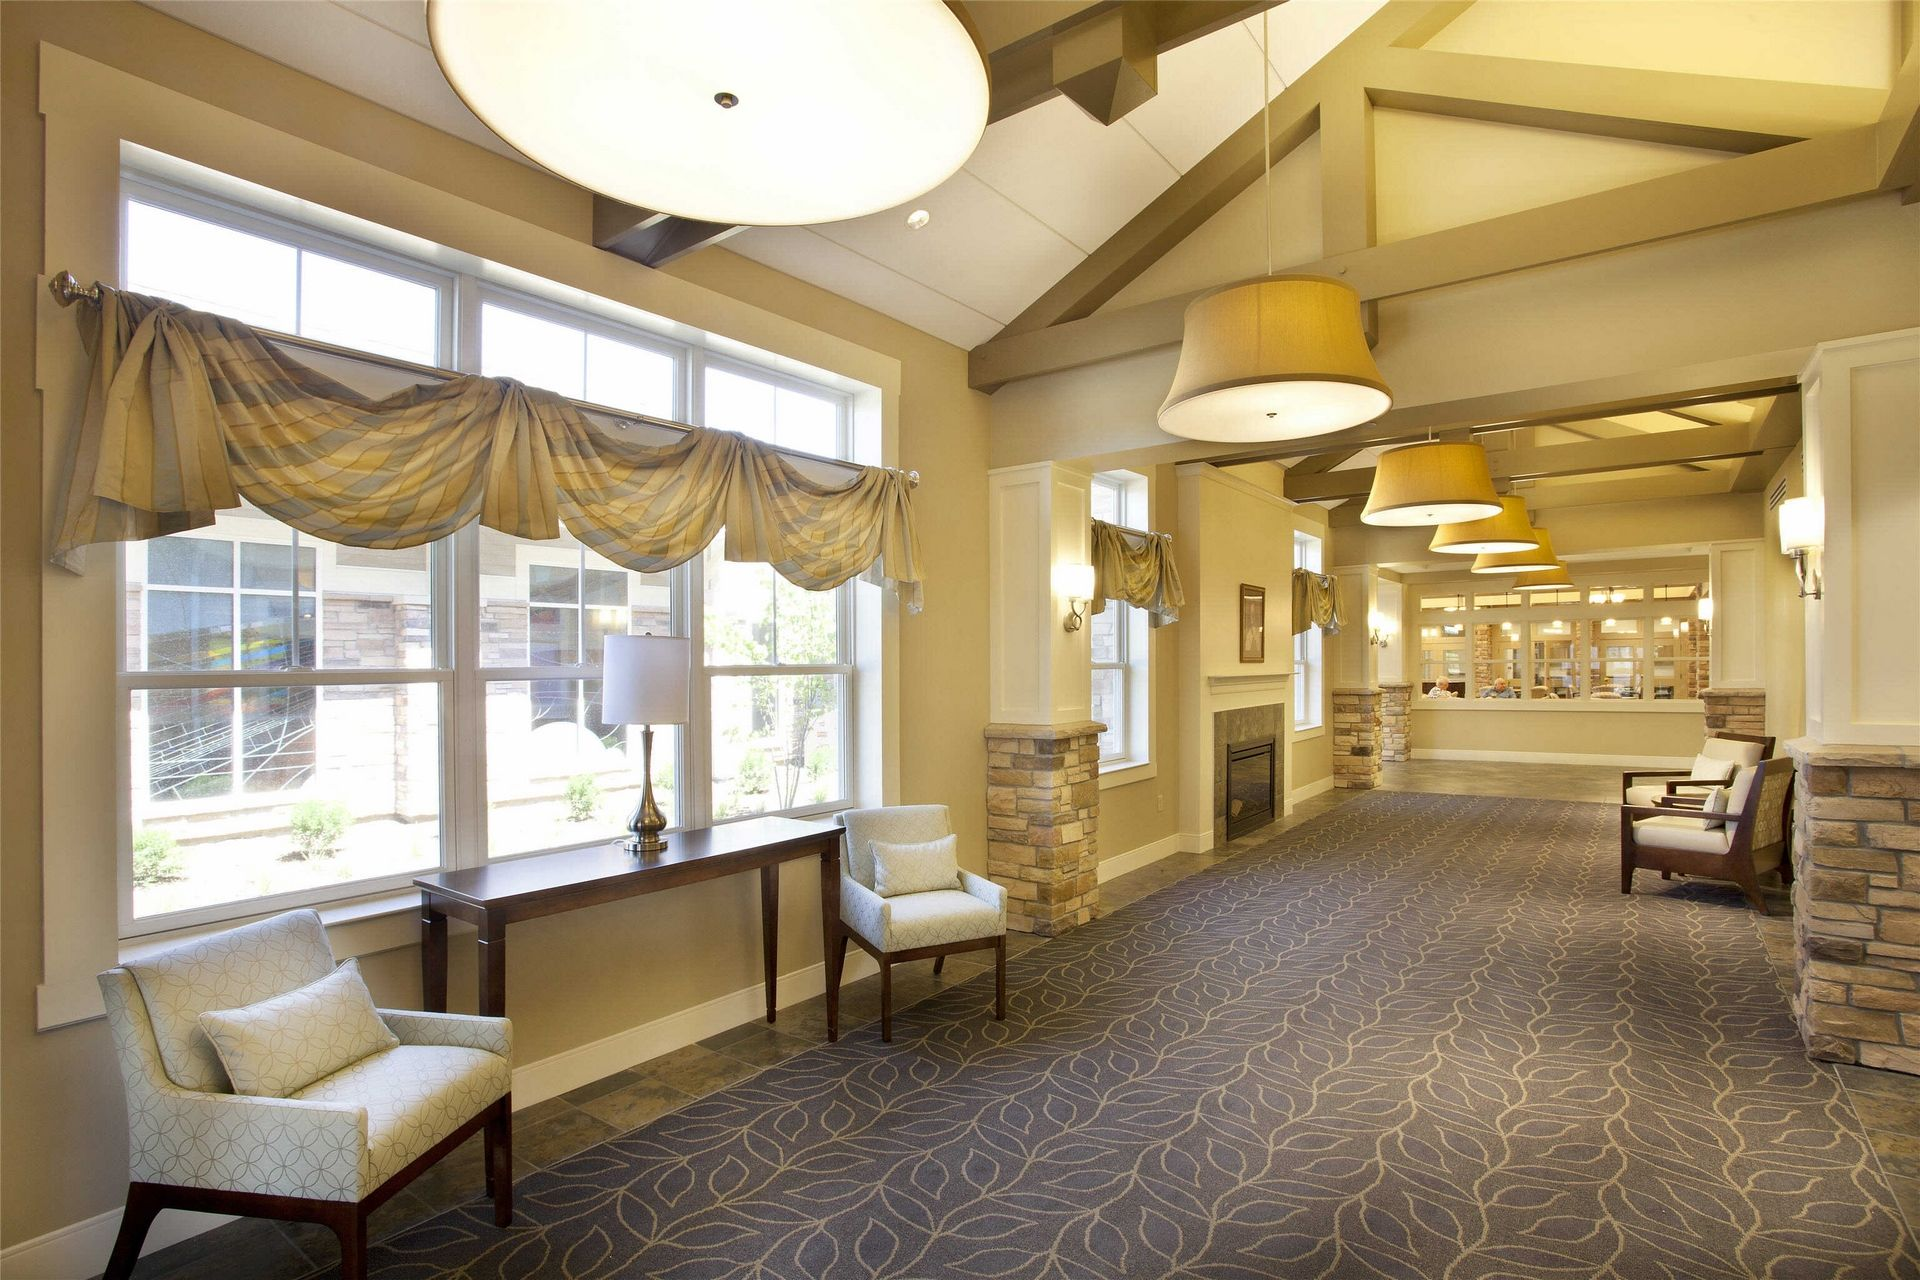 Kahl Home Skilled Nursing Design Corridor THW